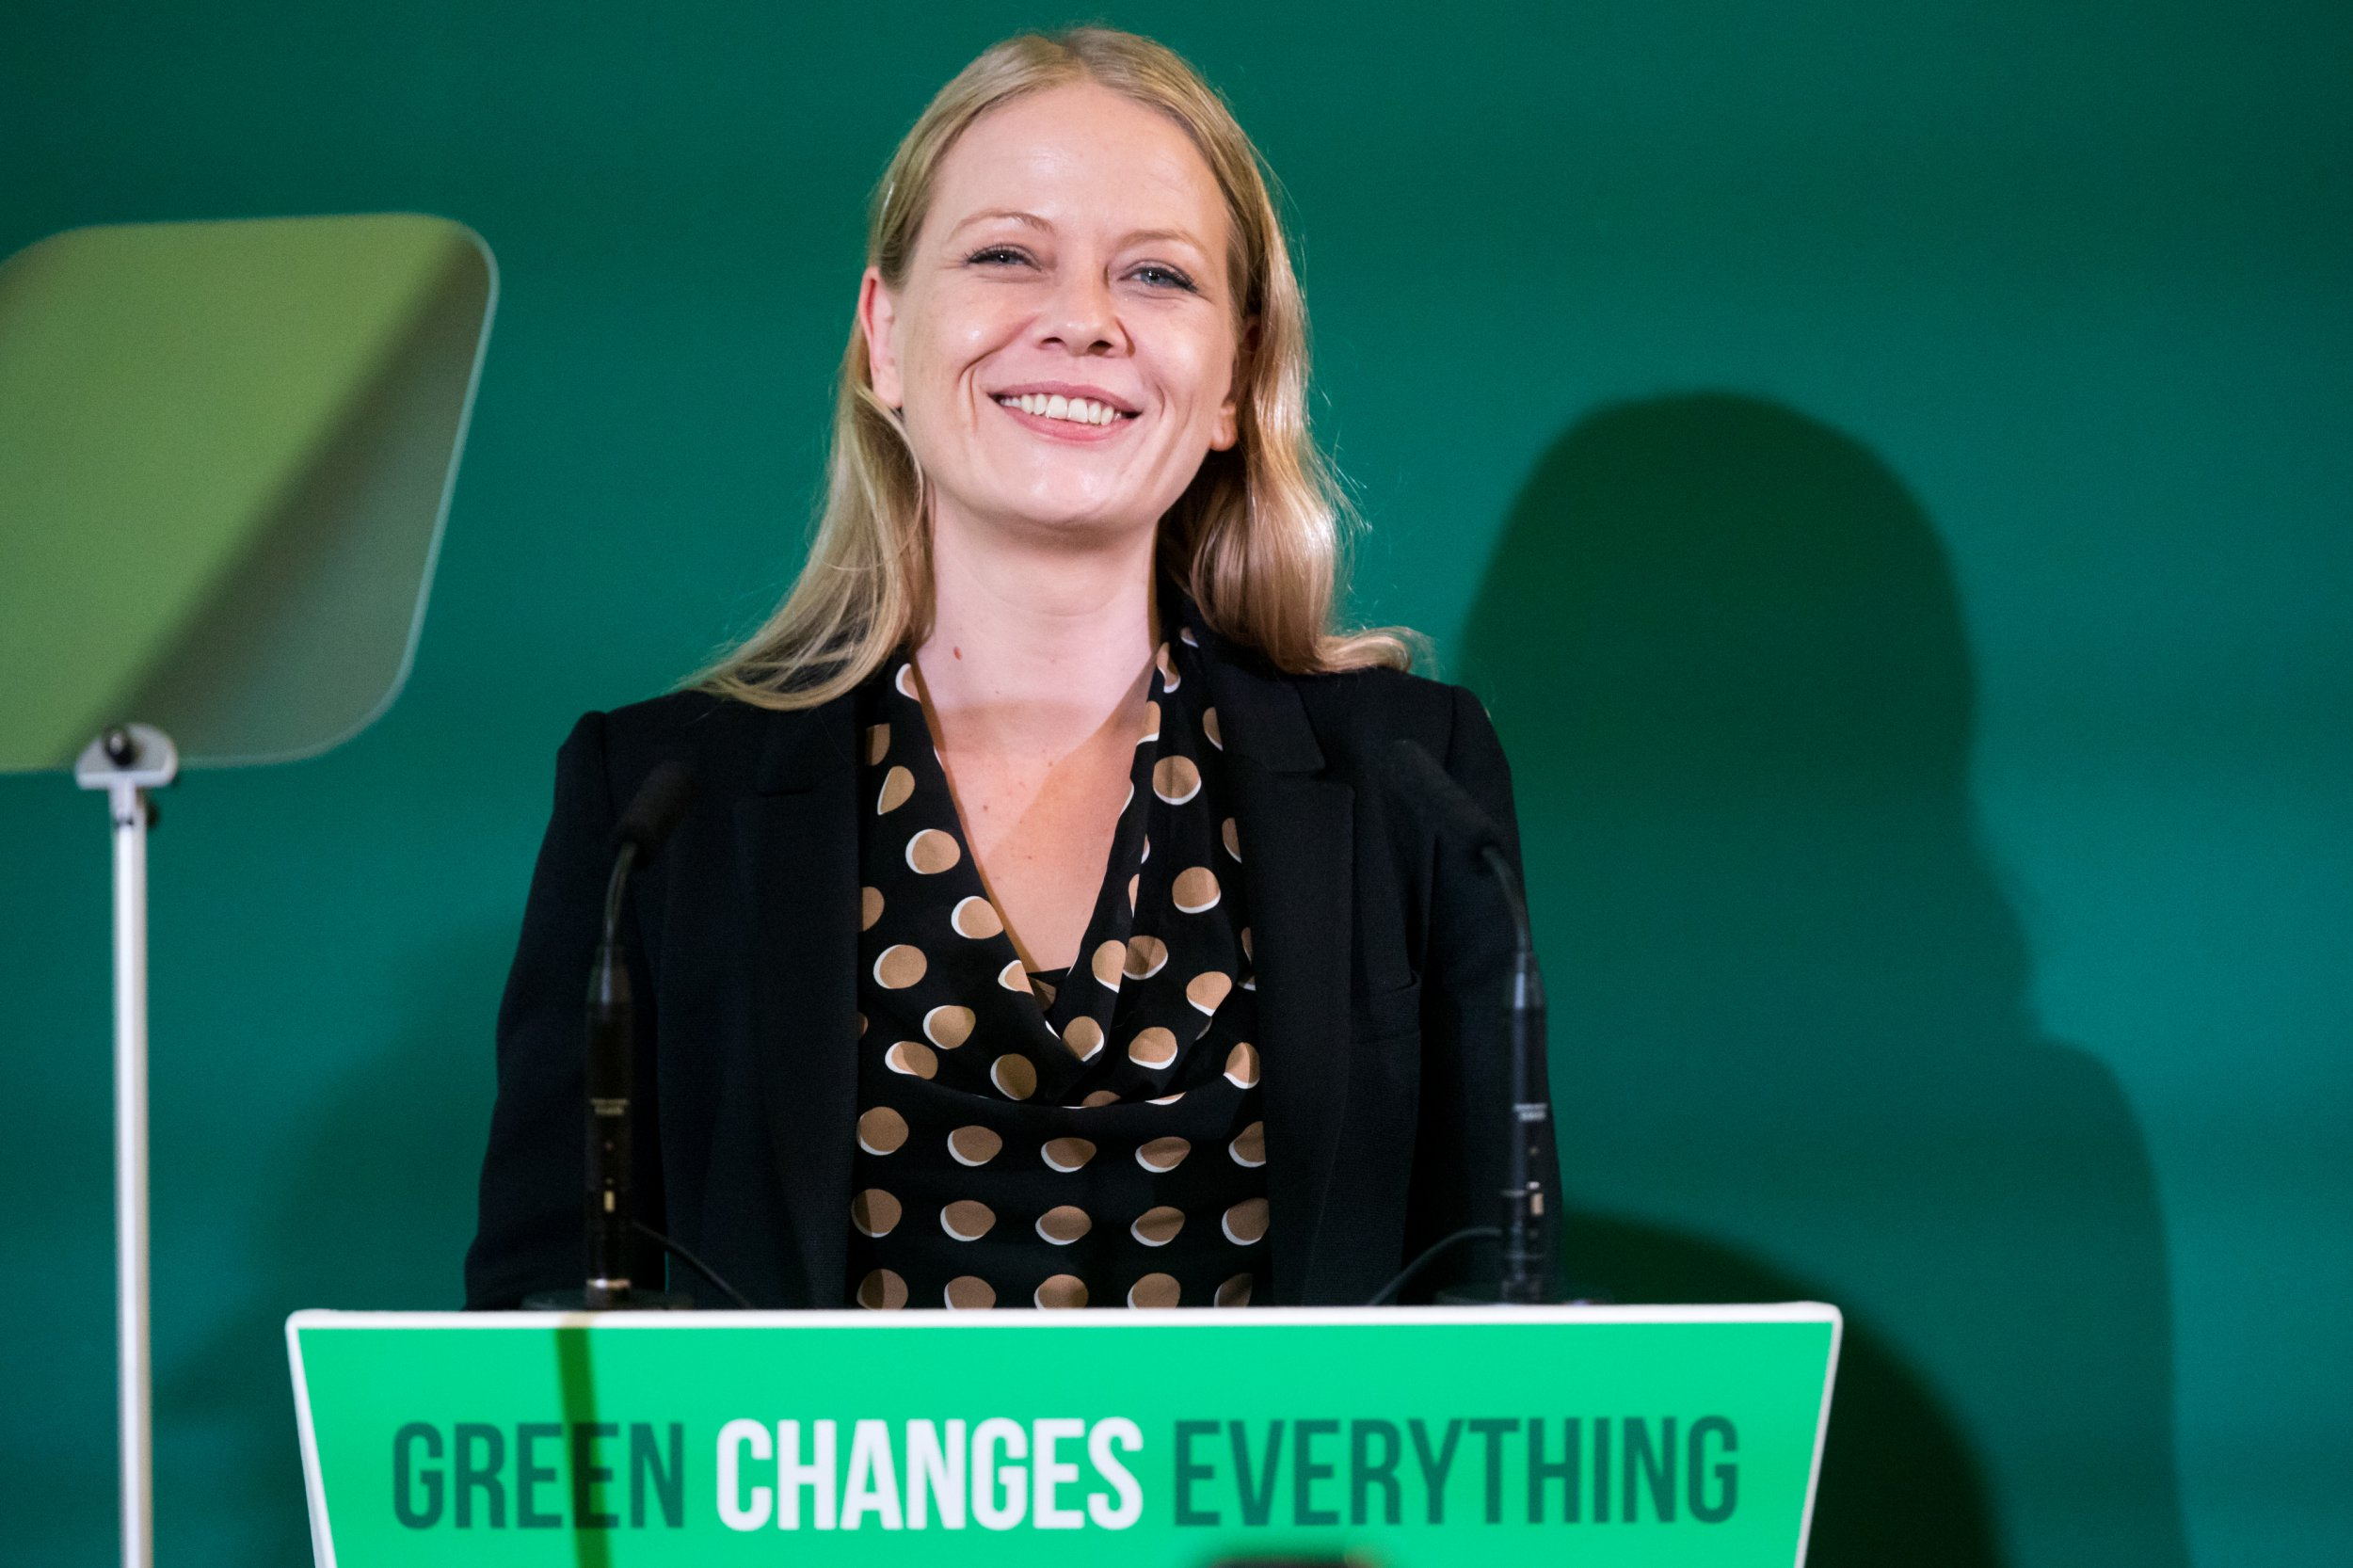 Co-leader of the Green Party, Sian Berry